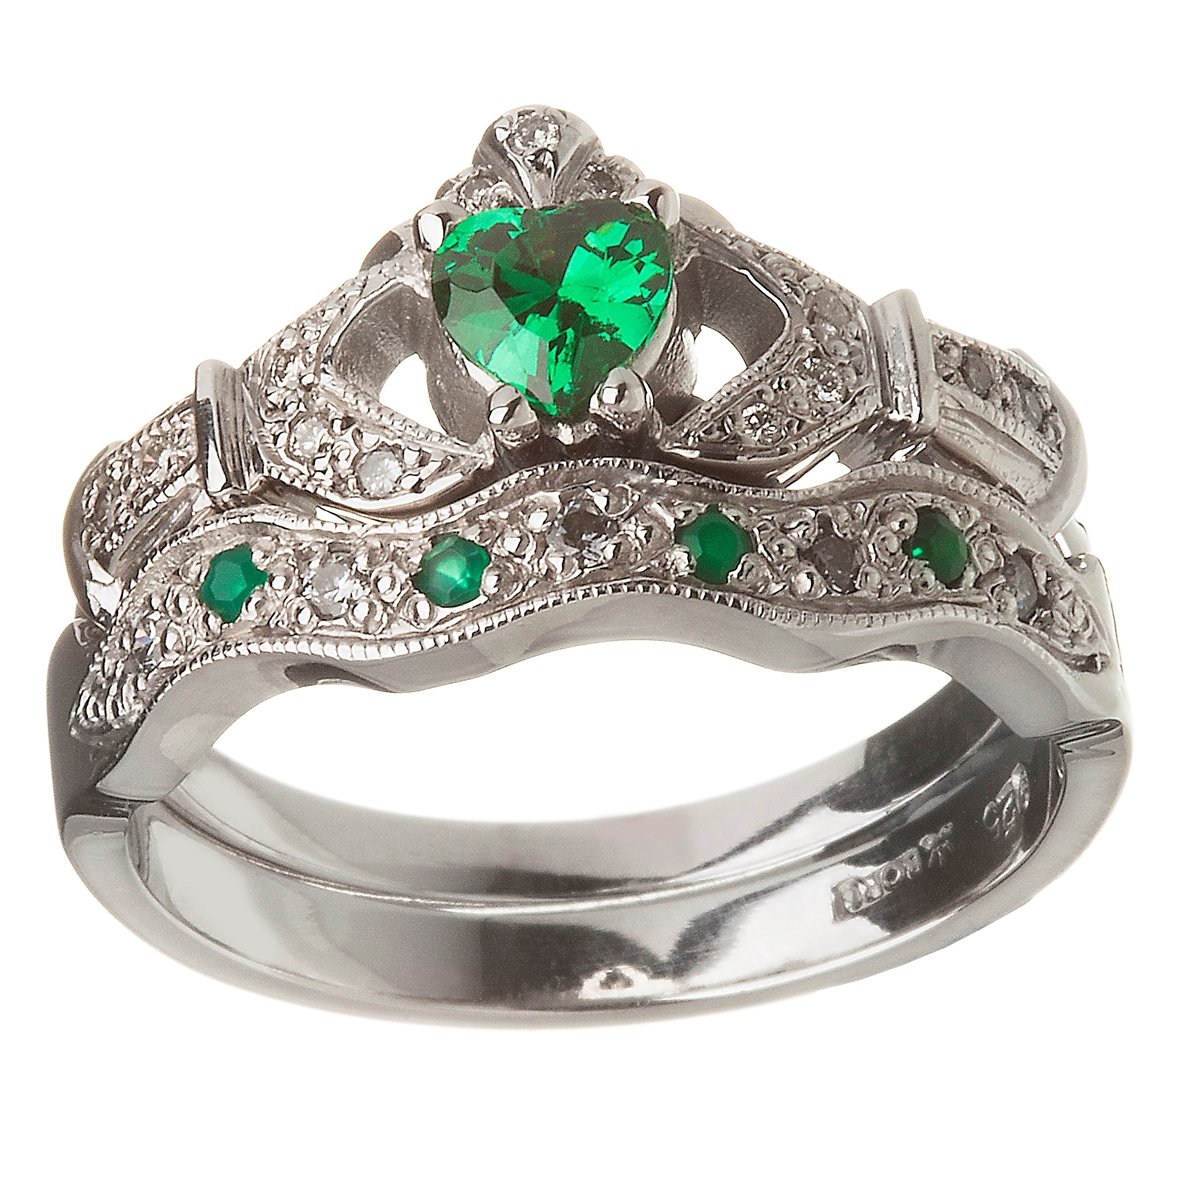 rings gold in bands round his nl with green emerald white band and matching her diamond wg jewelry wedding